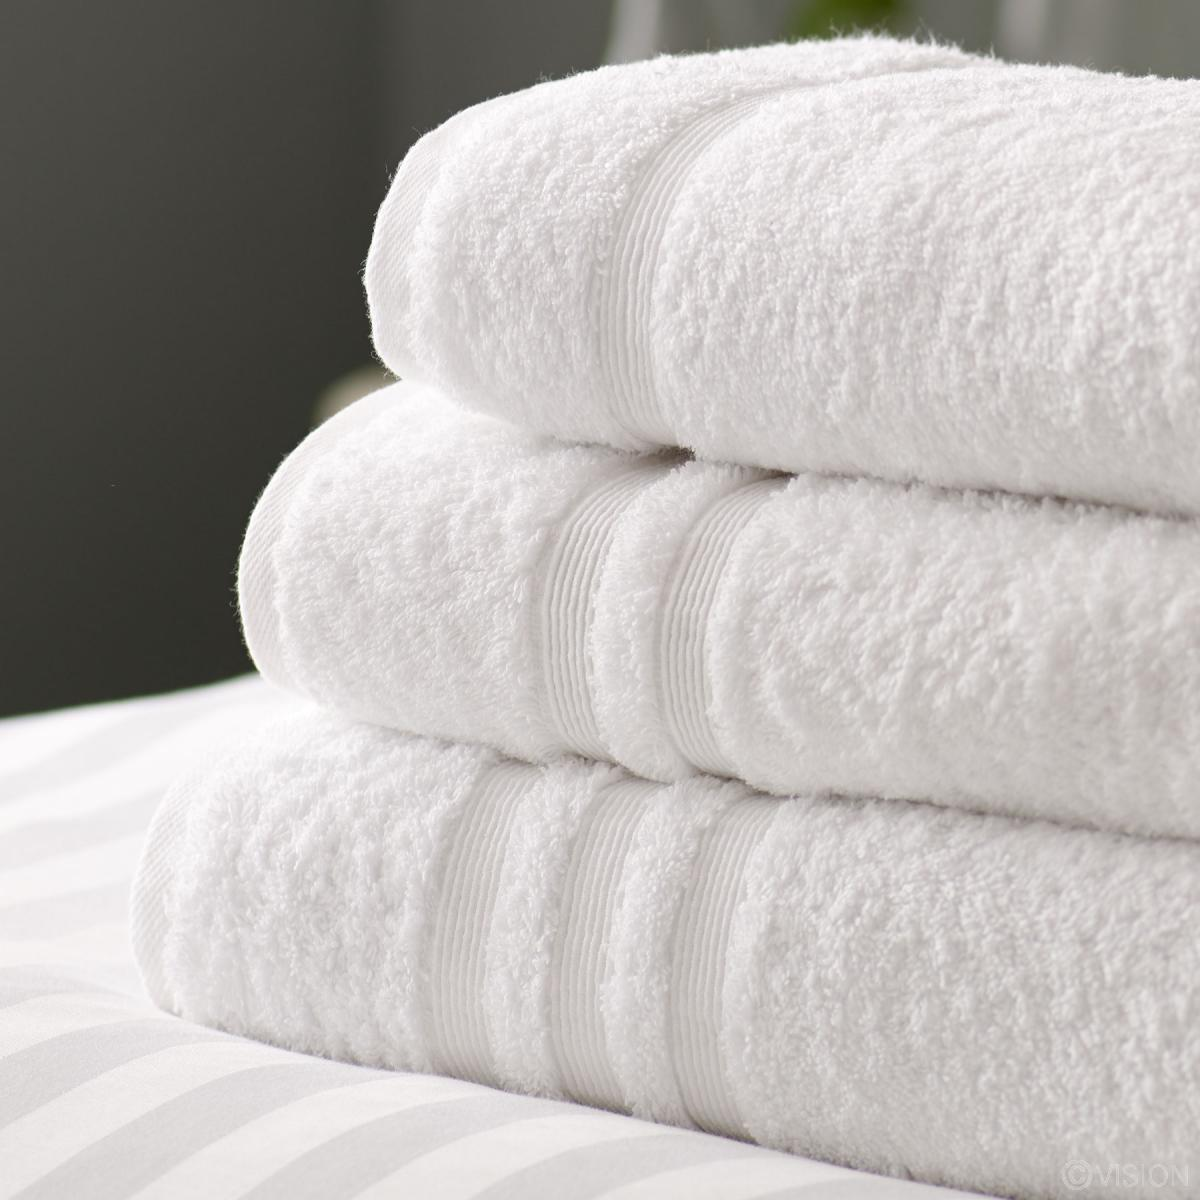 Buy Turkish Cotton Bath Sheets For Luxury Spas Hotels